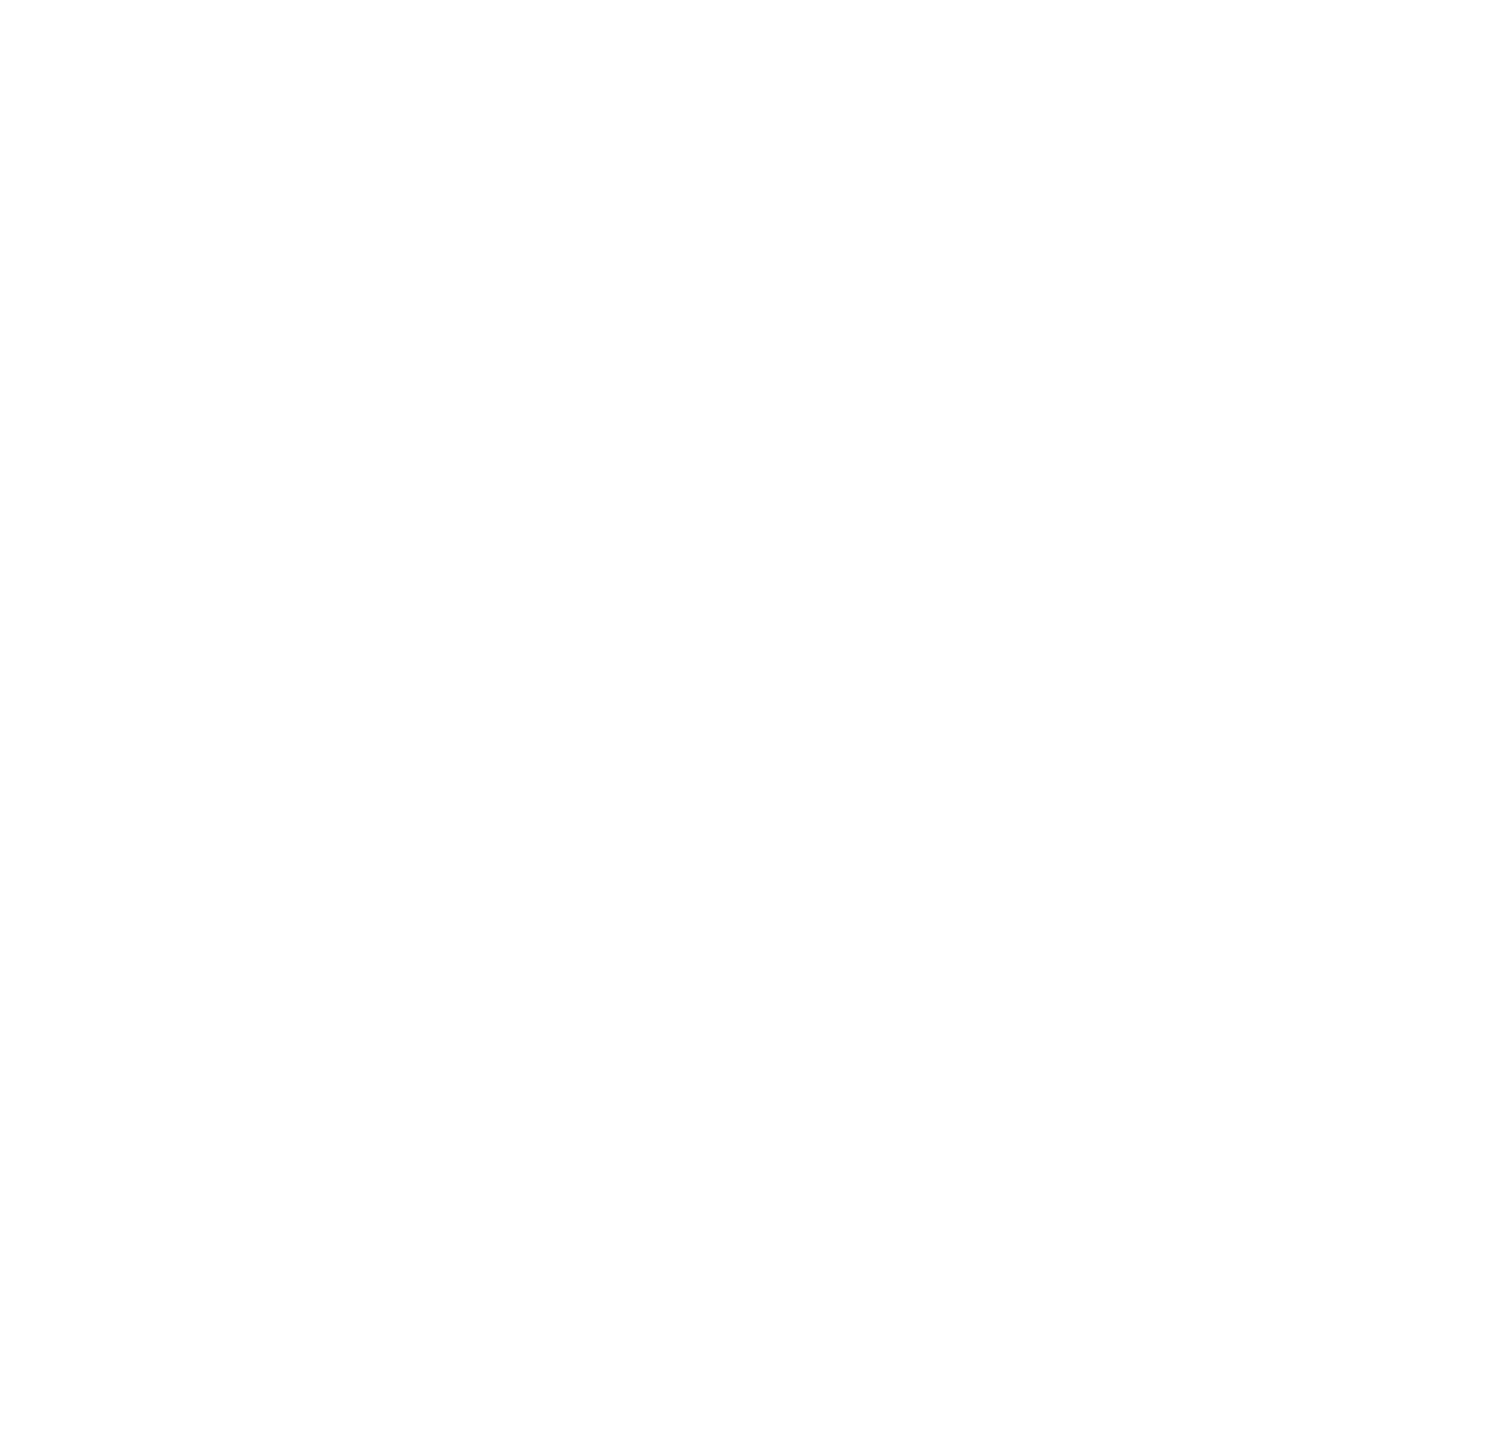 Kevin O'Brien Ceremonies